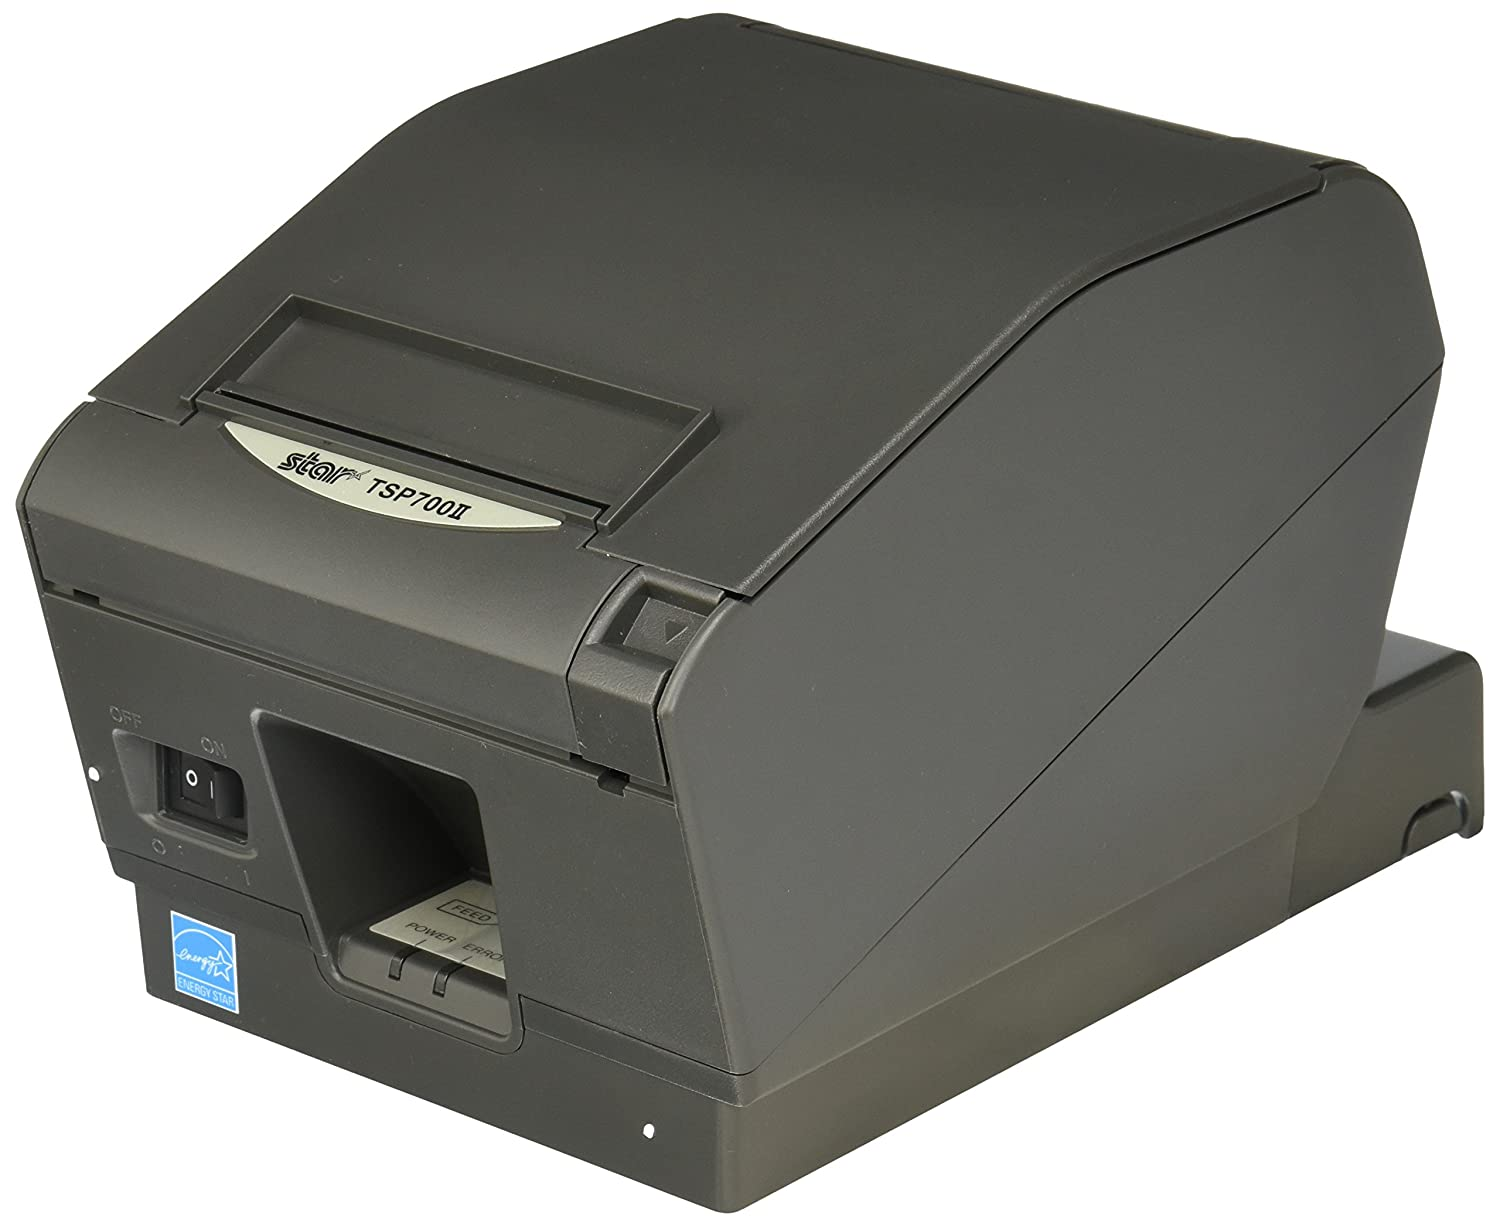 Ultra High Speed receipt printer  with external power supply,  auto cutter, and swappable USB, Ethernet or Bluetooth interface.